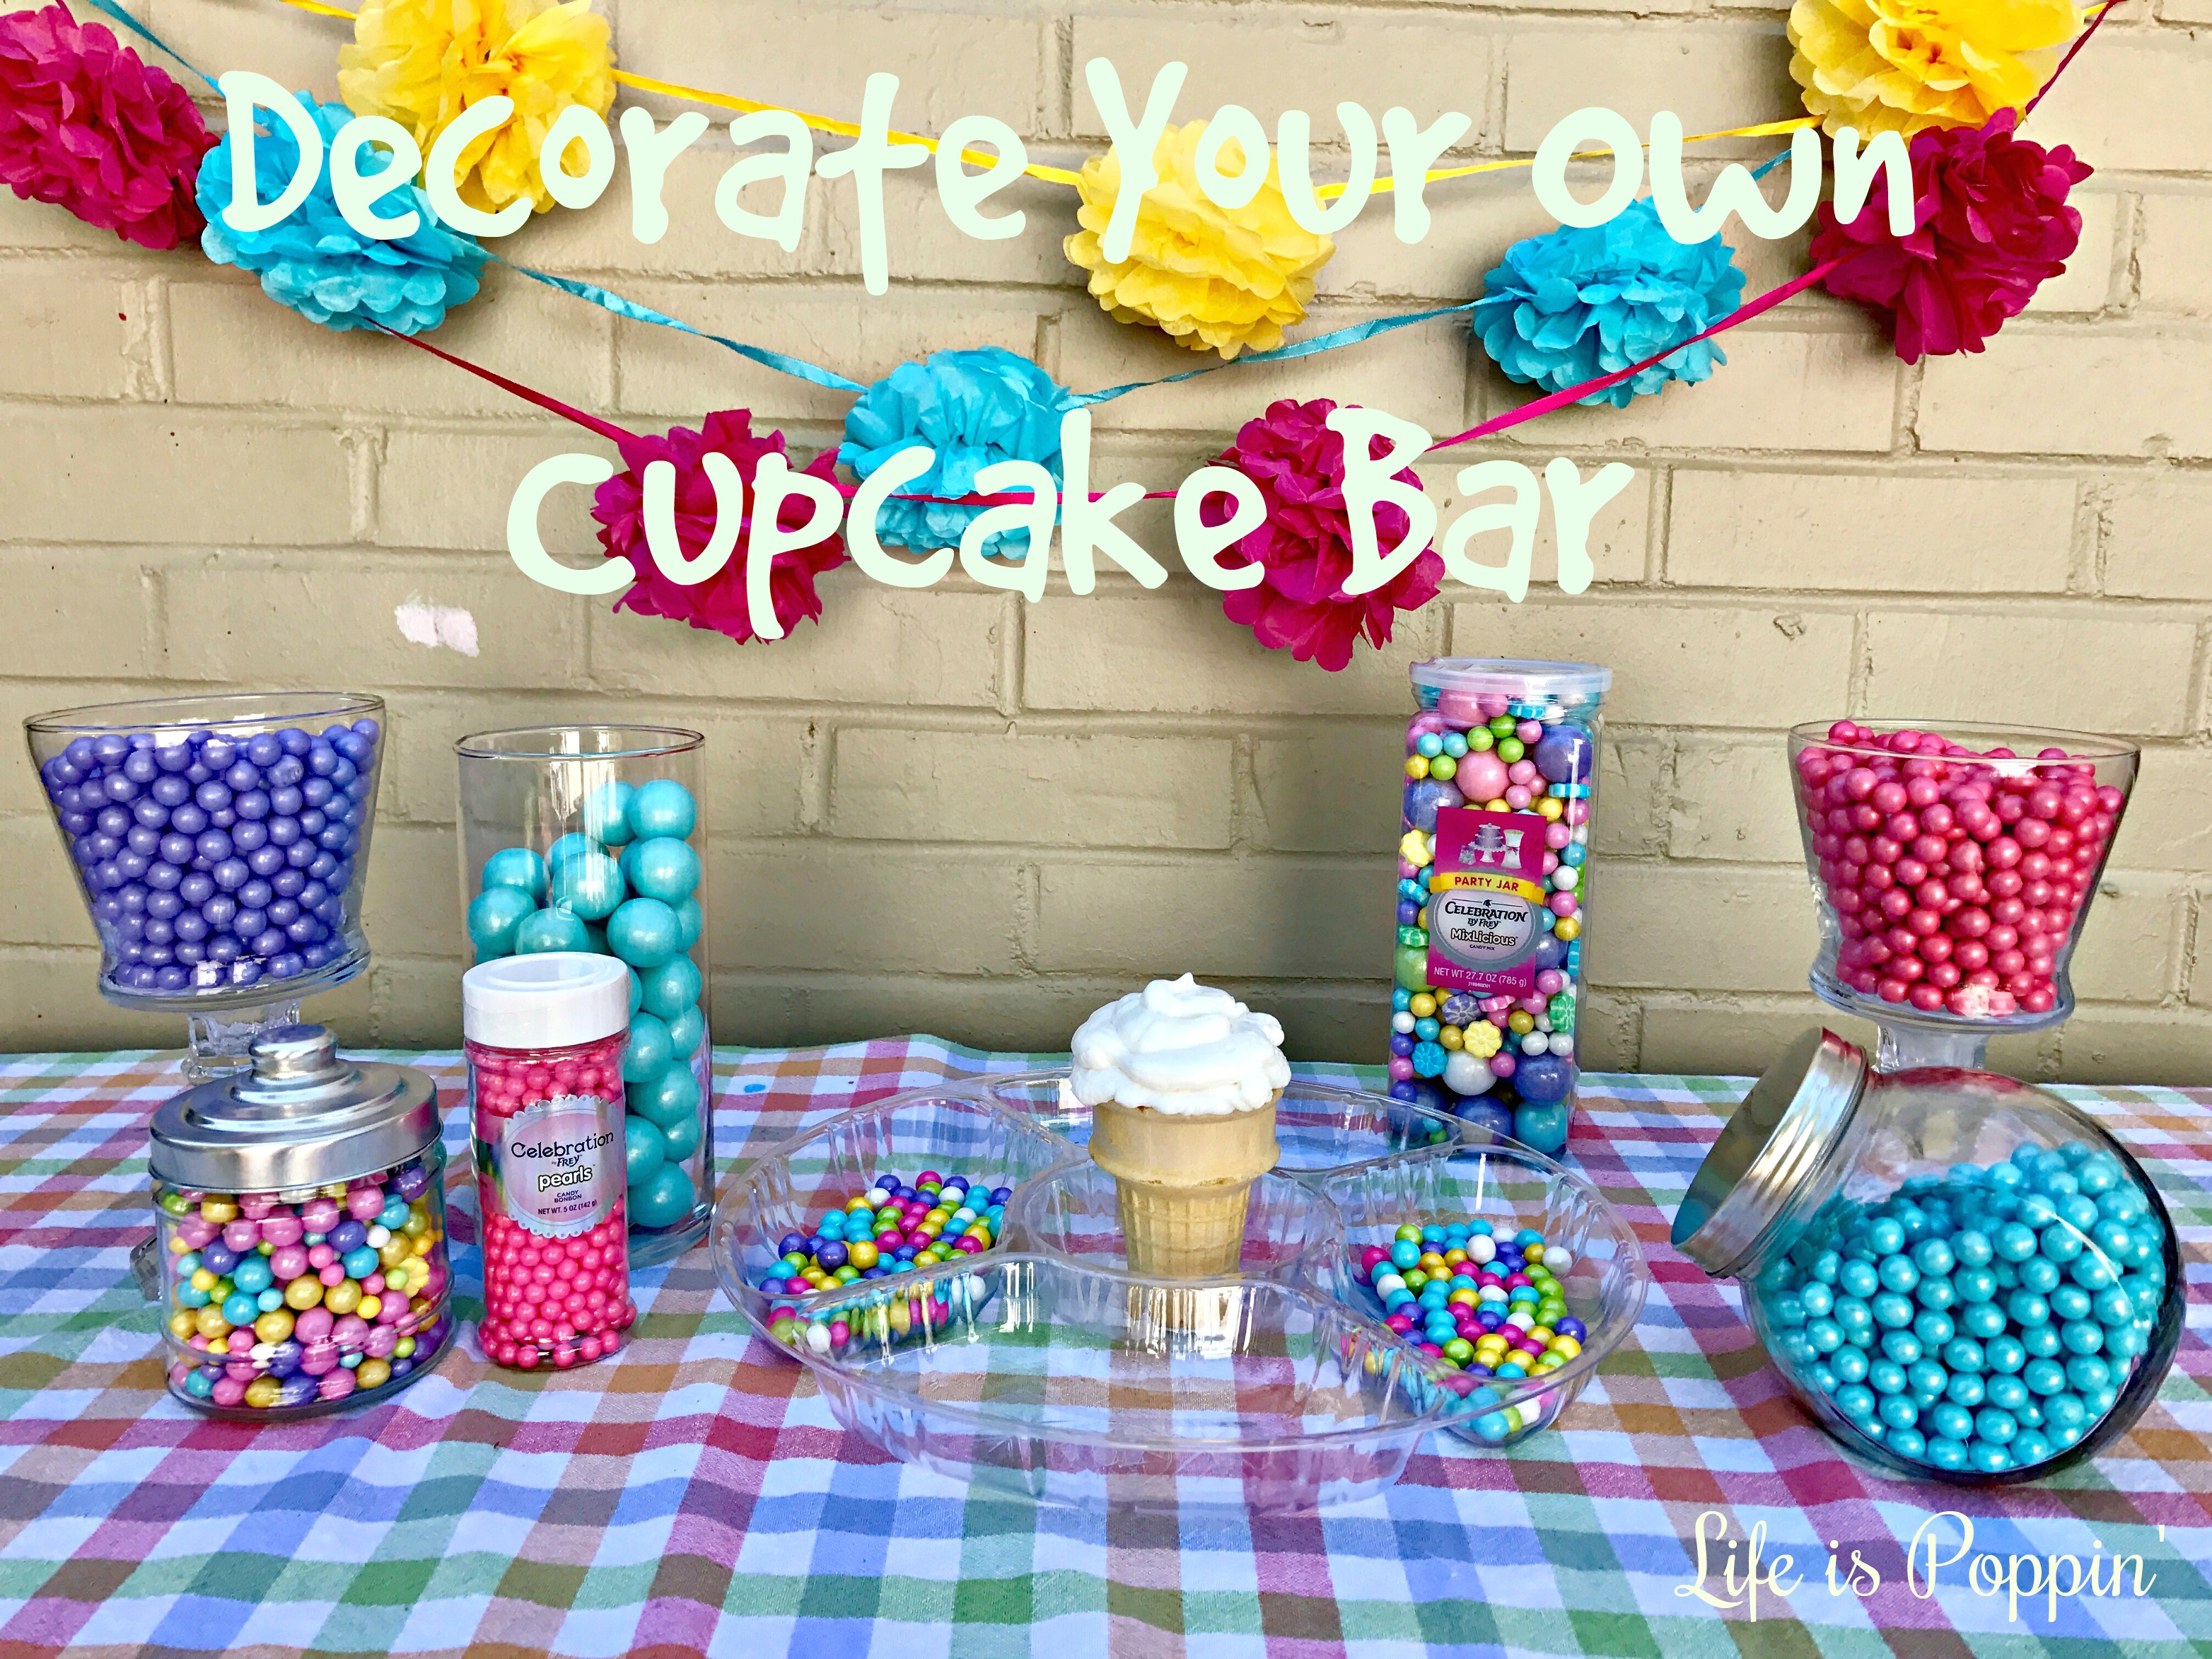 Decorate Your Own Cupcake Bar  Perfect For Parties. Wedding Favors Royal Blue. Asian Wedding Reception Venues London. Wedding Show Windsor. Wedding Announcements Birmingham Al. Free Printable Christmas Wedding Invitations Templates. Wedding Photography Booking Form Contract. The Wedding Planner Soundtrack Listen. Wedding Photography Studio Uk